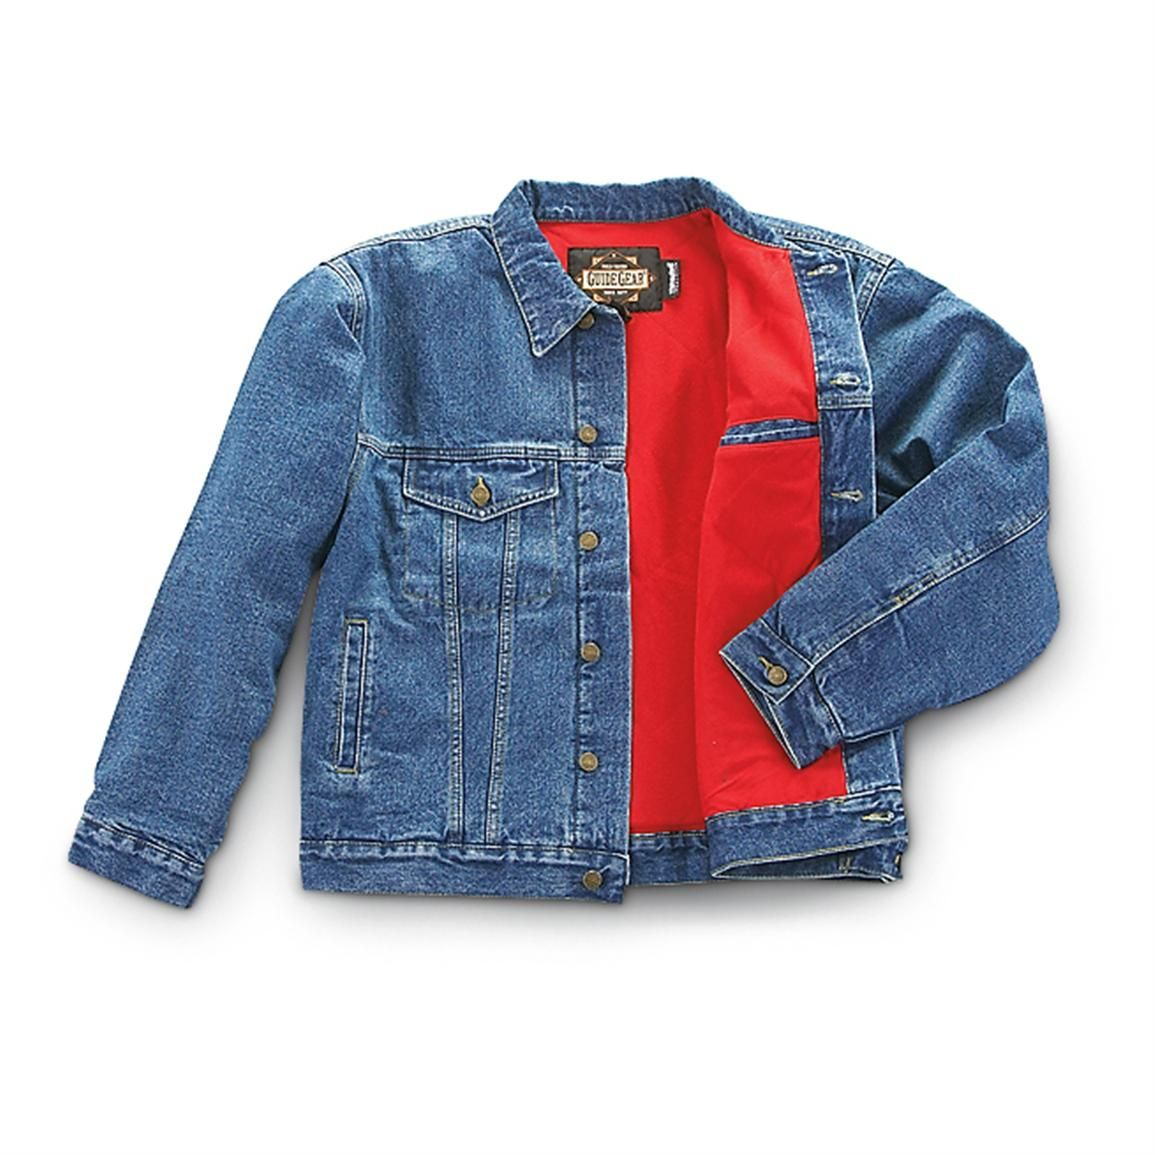 Guide Gear 100 Gram Thinsulate Insulation Lined Denim Jacket Stonewash Lined Denim Jacket Denim Jacket Jackets [ 1155 x 1155 Pixel ]